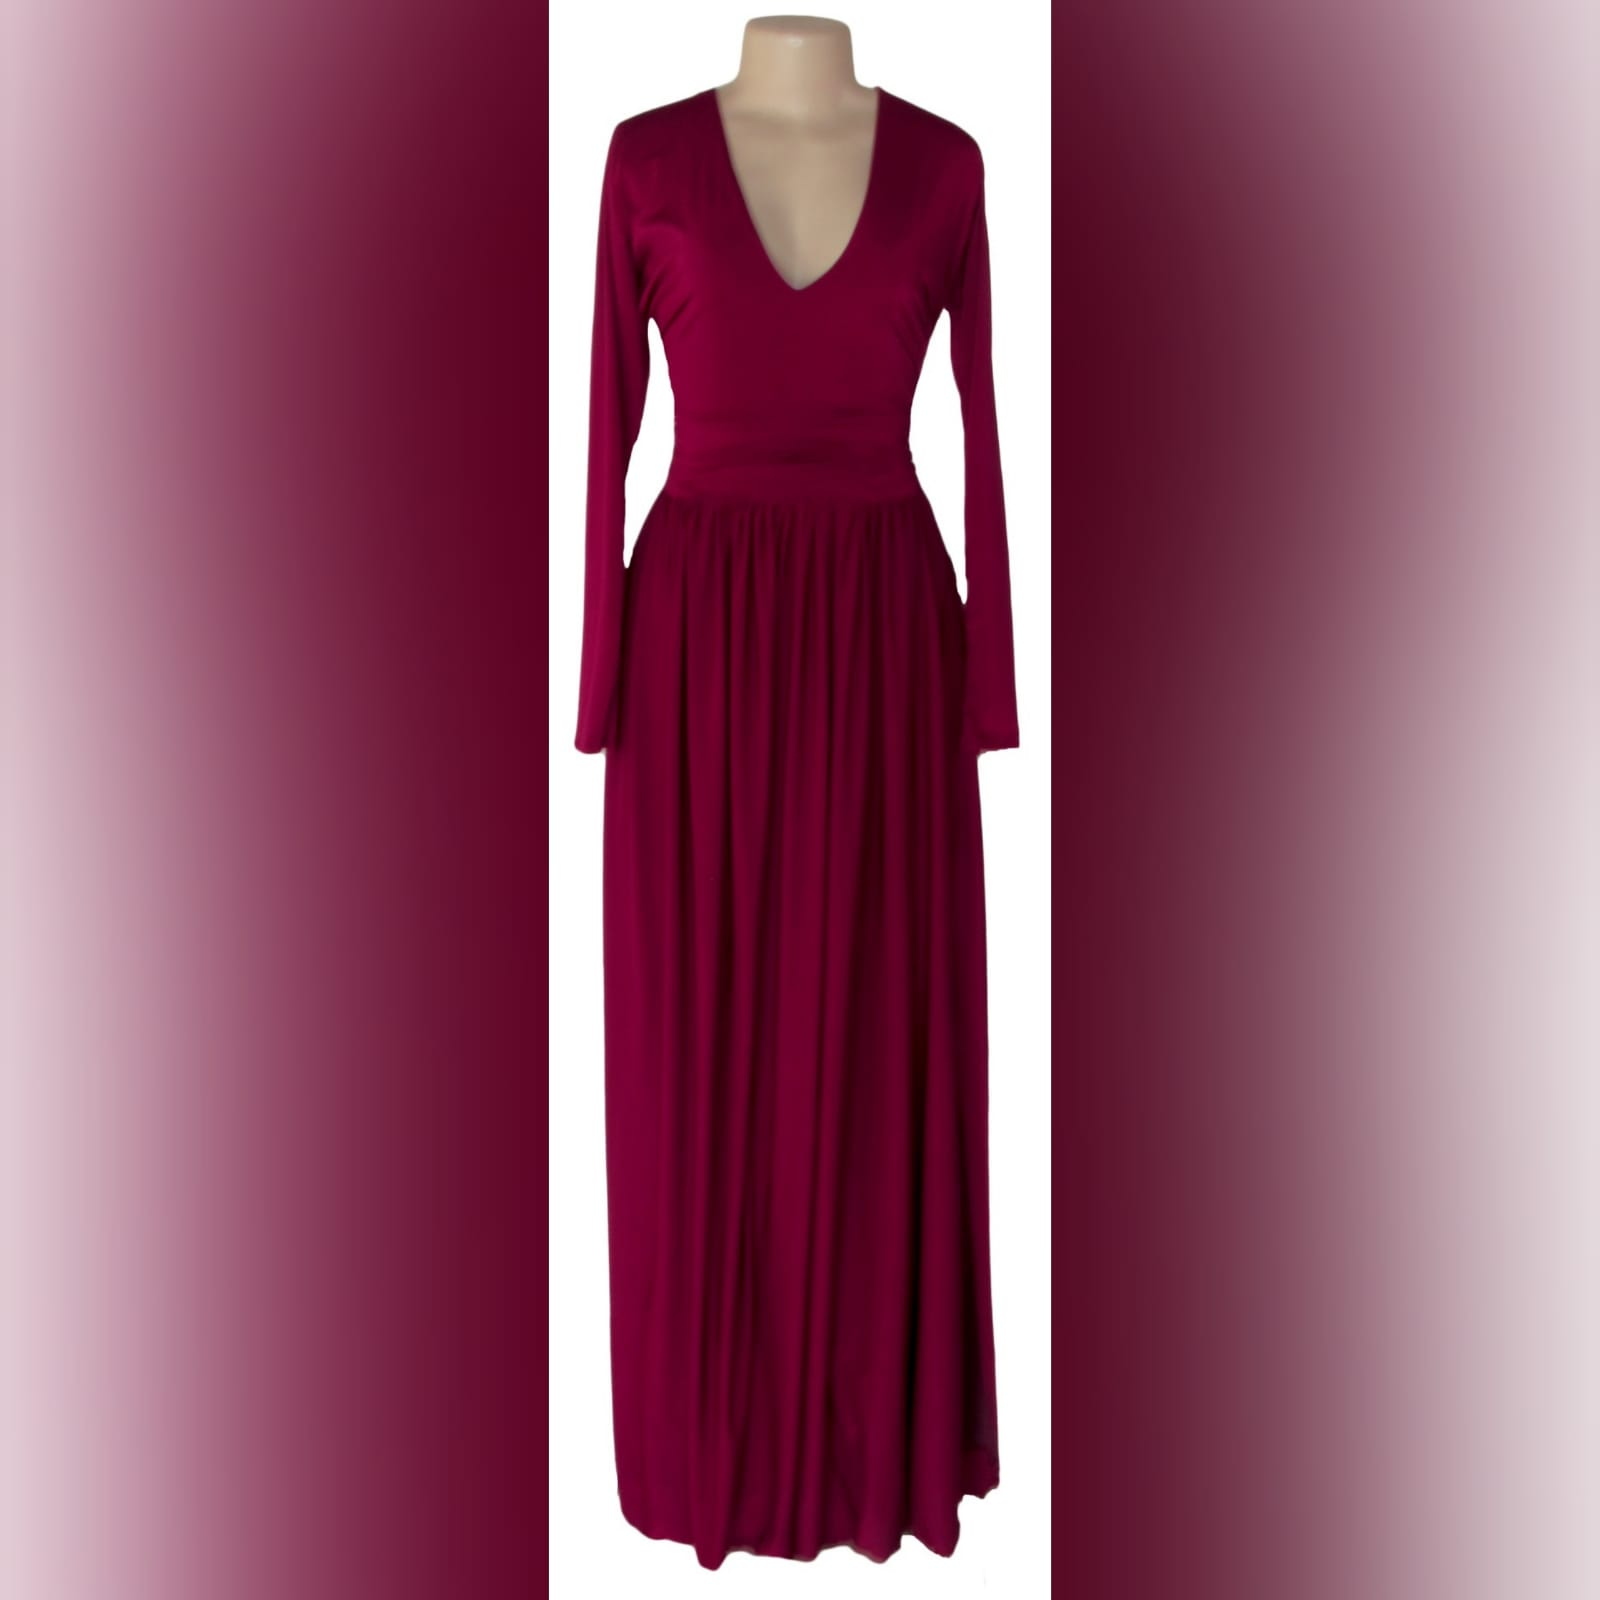 Burgundy simple long prom dress 3 burgundy simple long prom dress with a v neckline, long fitted sleeves, flowy gathered bottom with a slit and a little train.